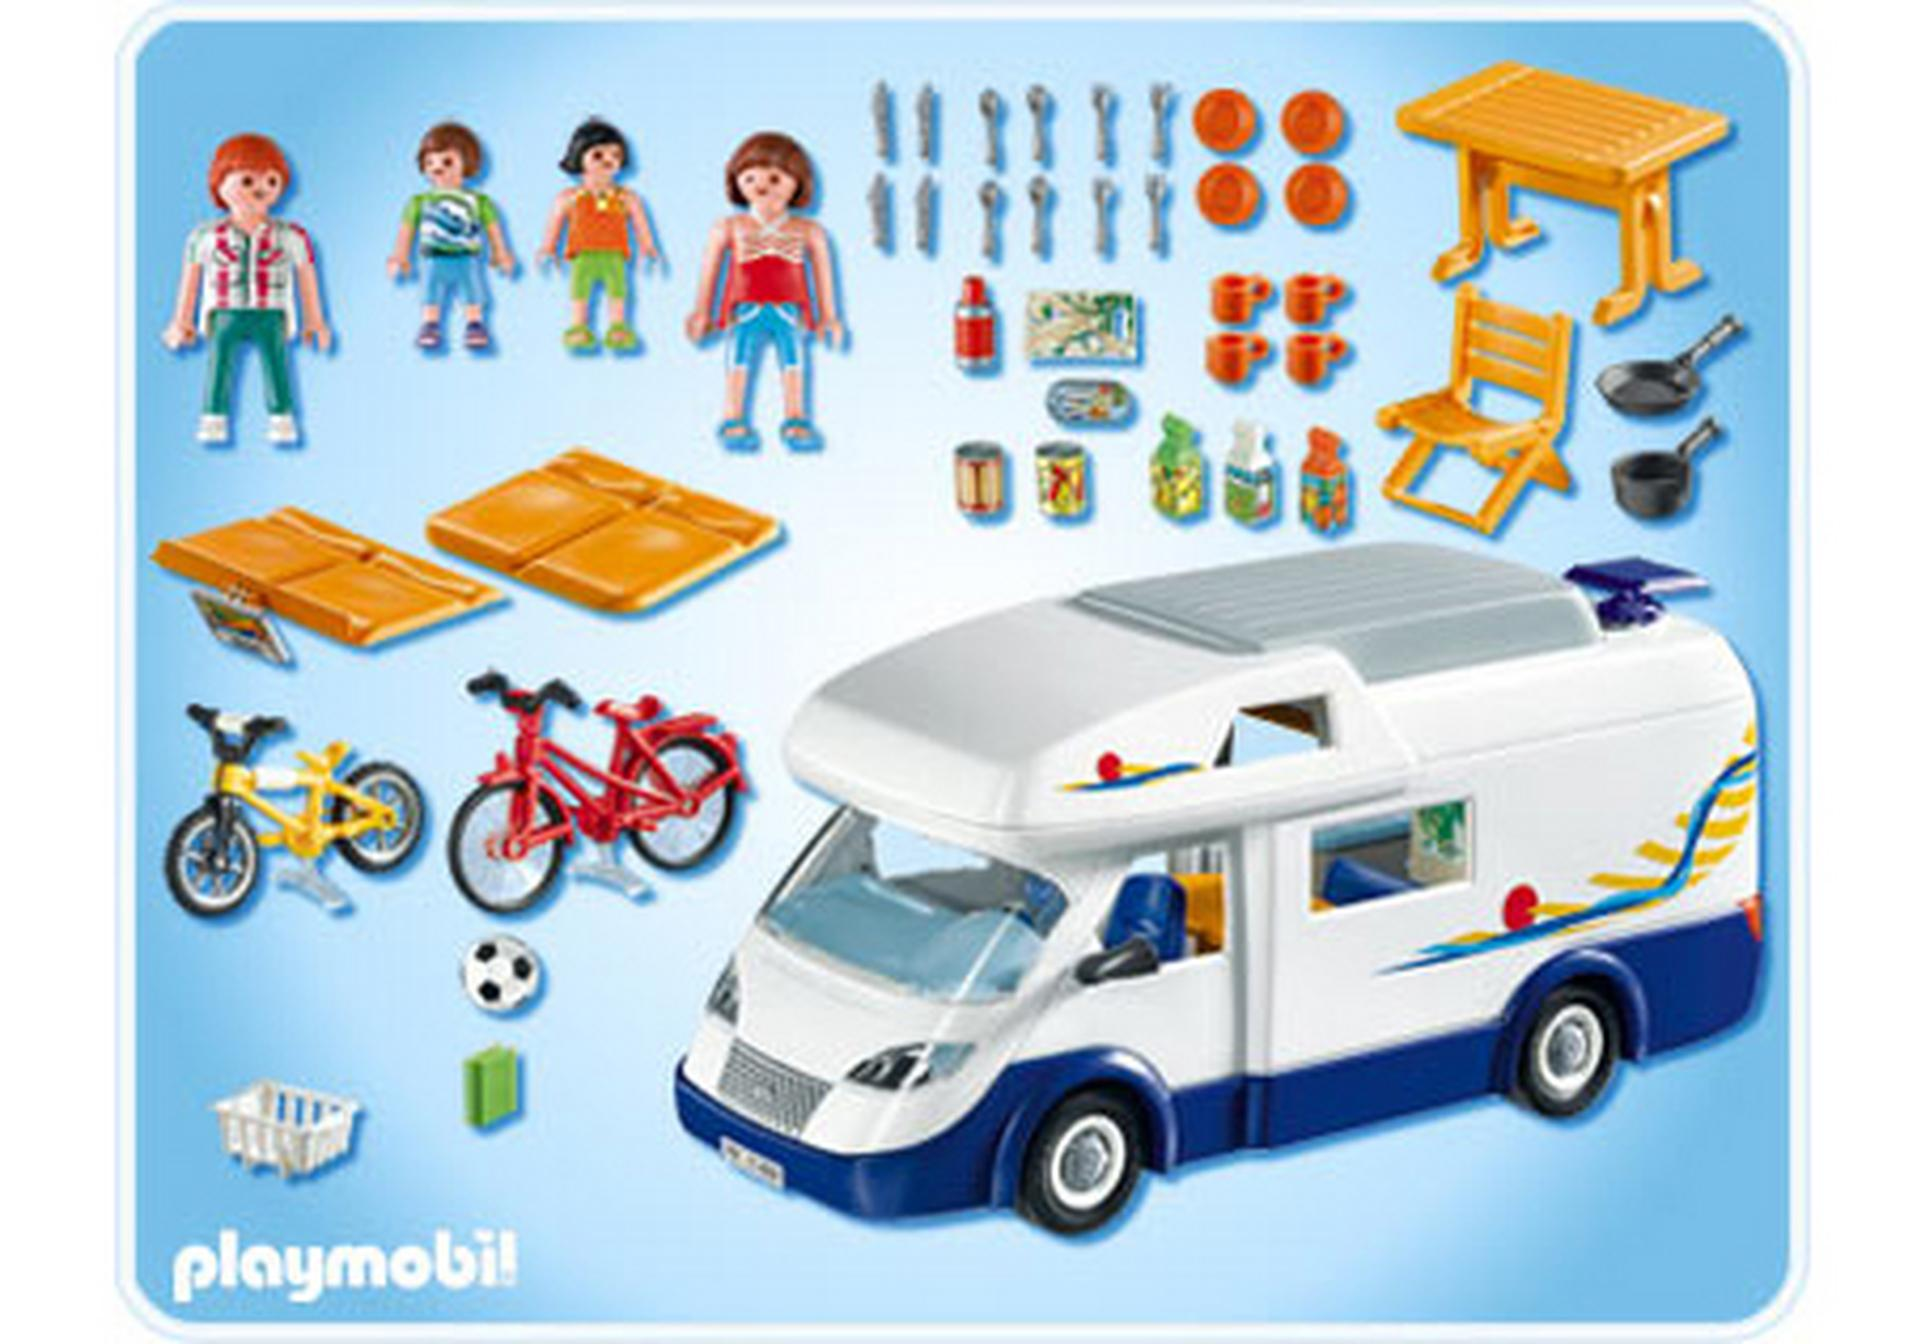 Grand camping car familial 4859 a playmobil france for Modele maison playmobil